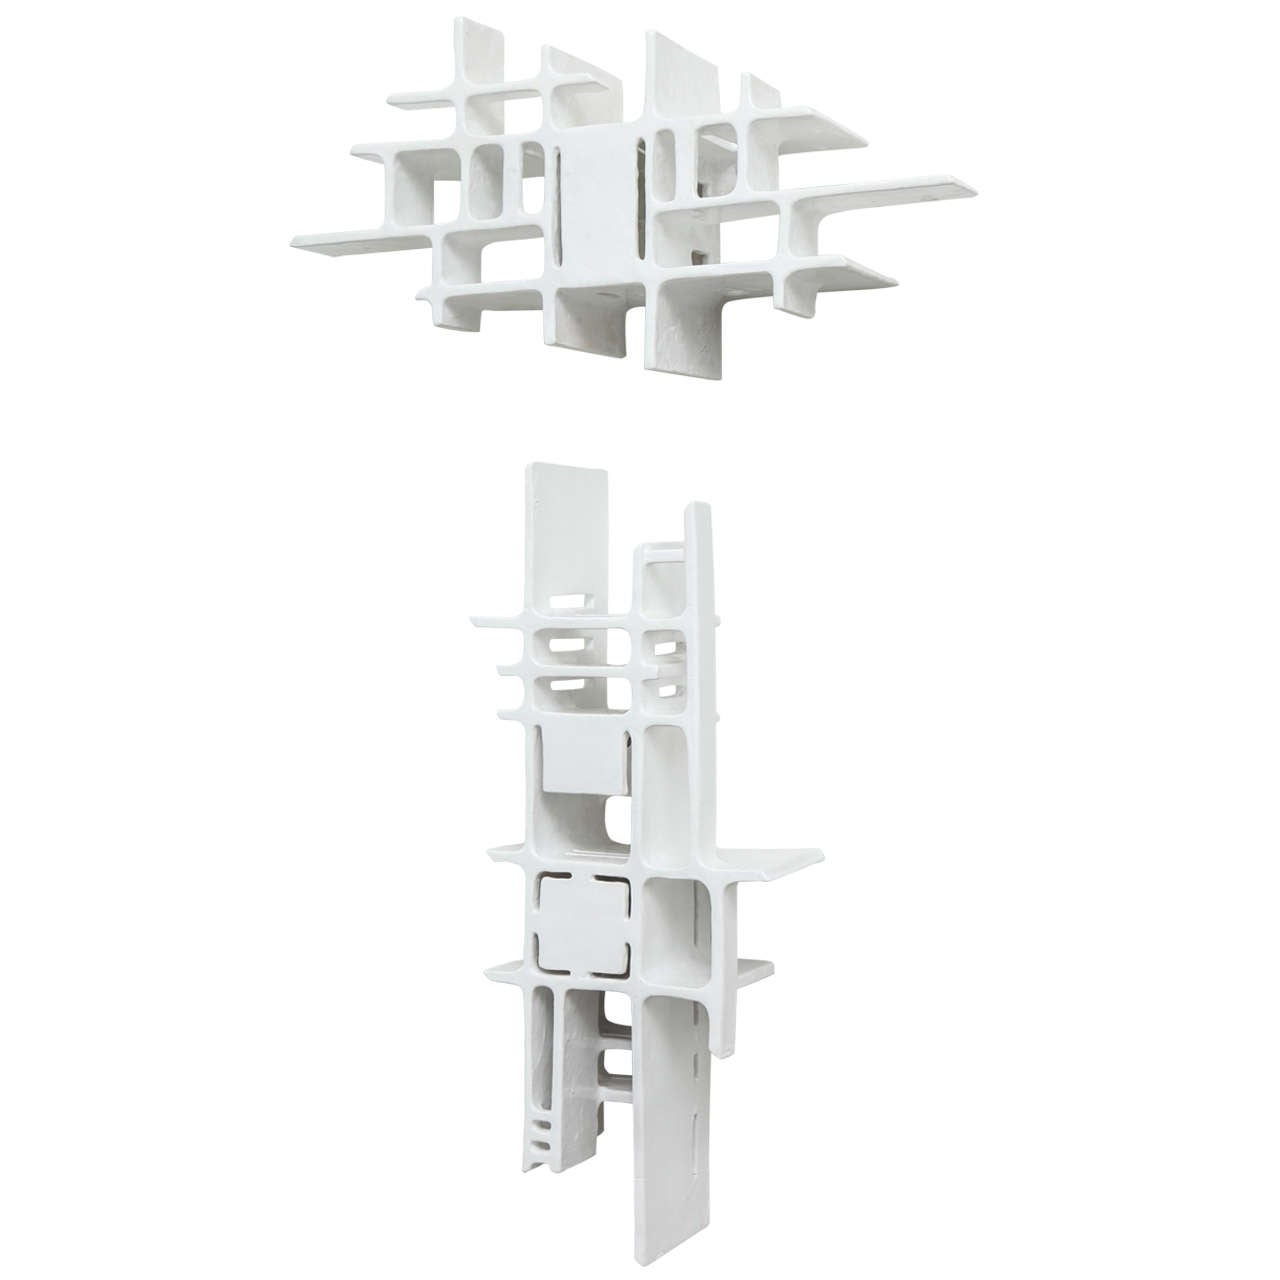 Wall Sconces Nyc: NYC Sconces At 1stdibs